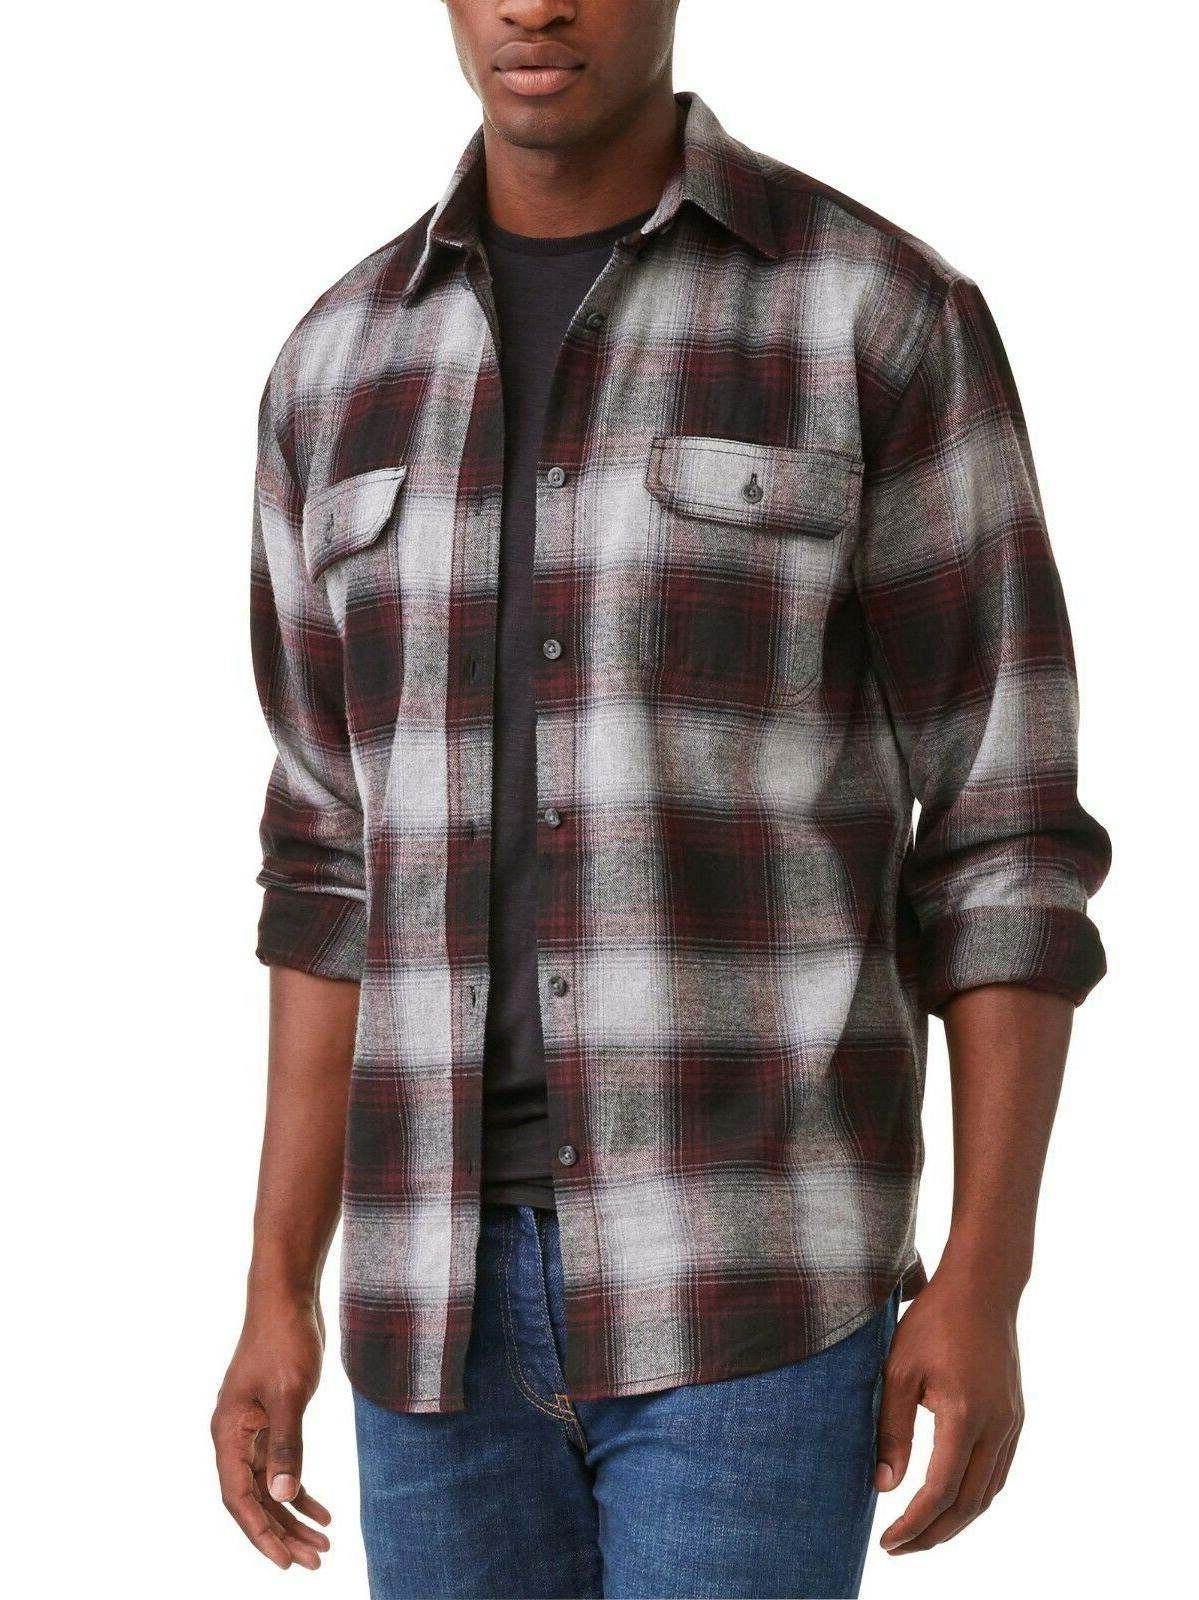 mens long sleeve flannel shirt gray maroon